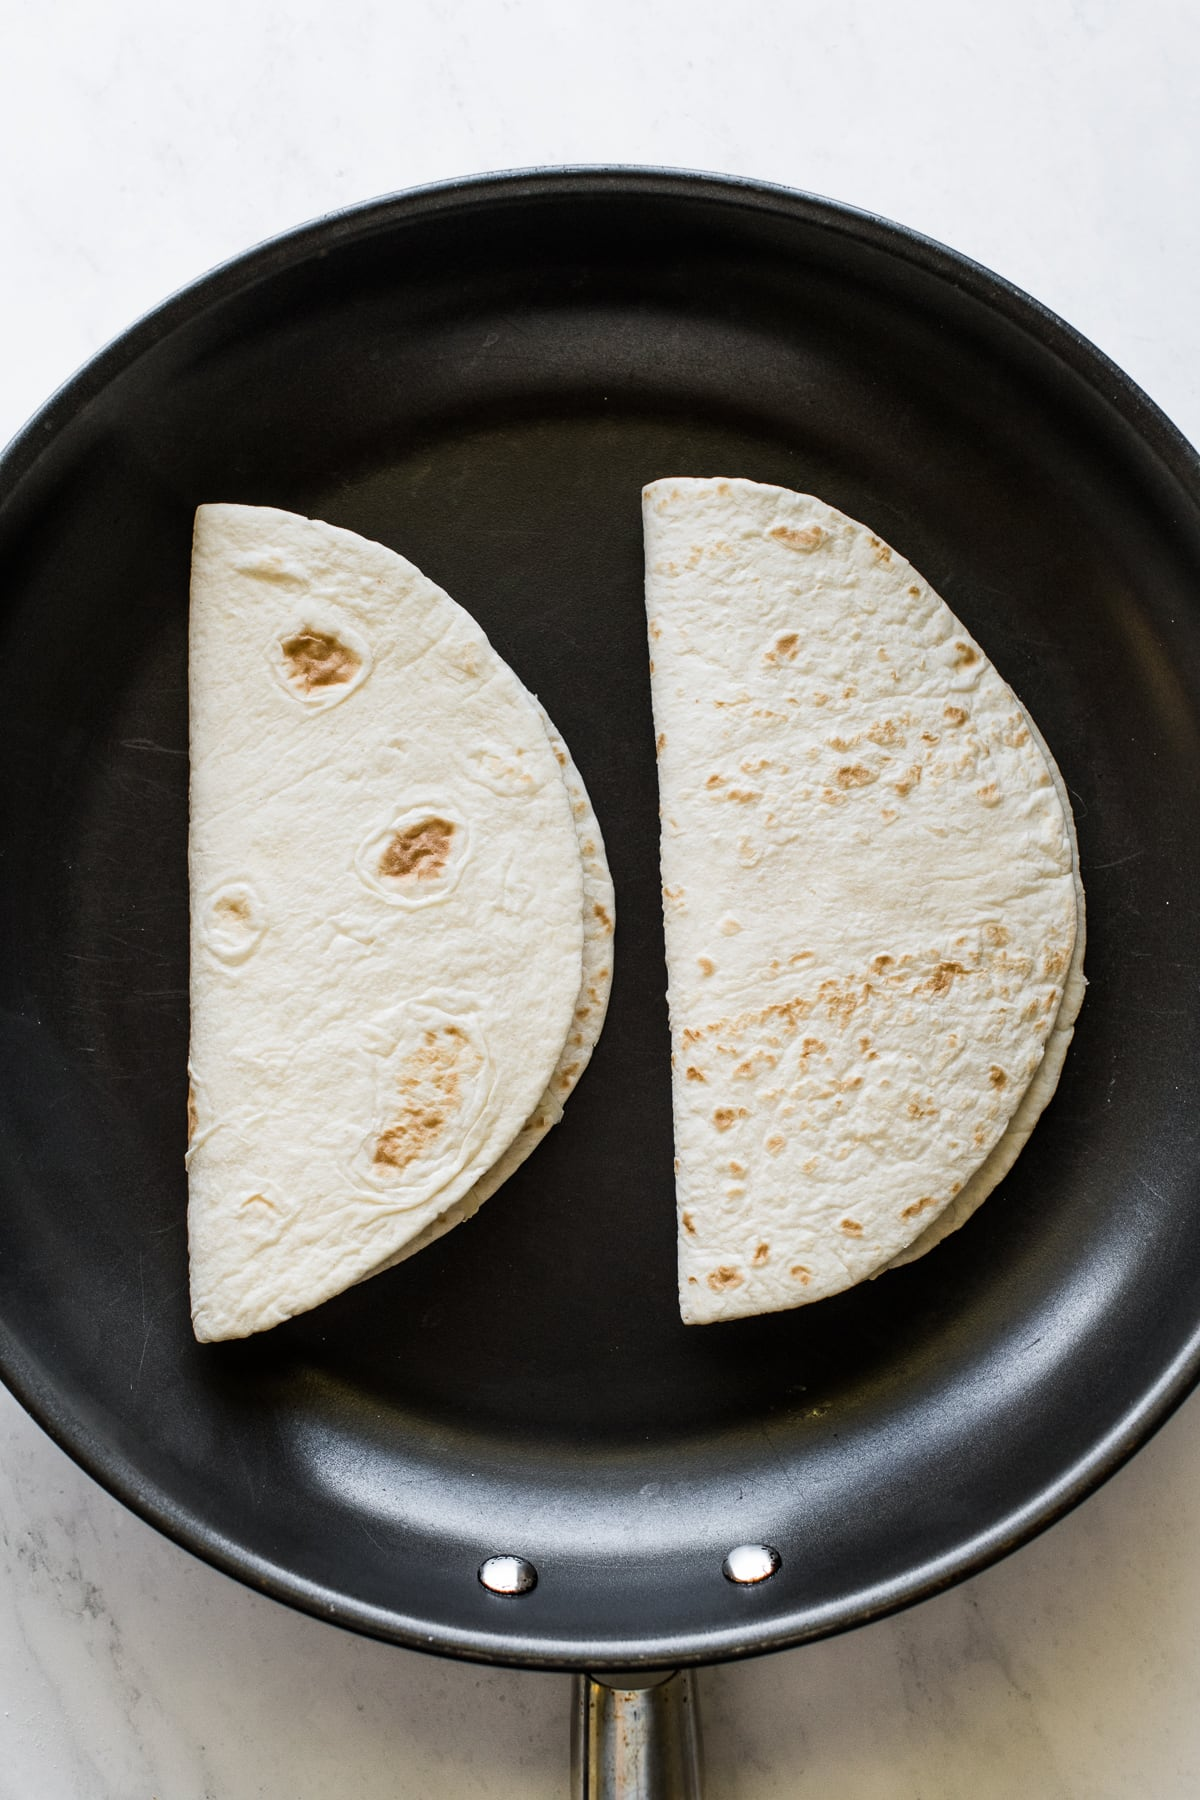 Two cheese quesadillas cooking on a skillet.